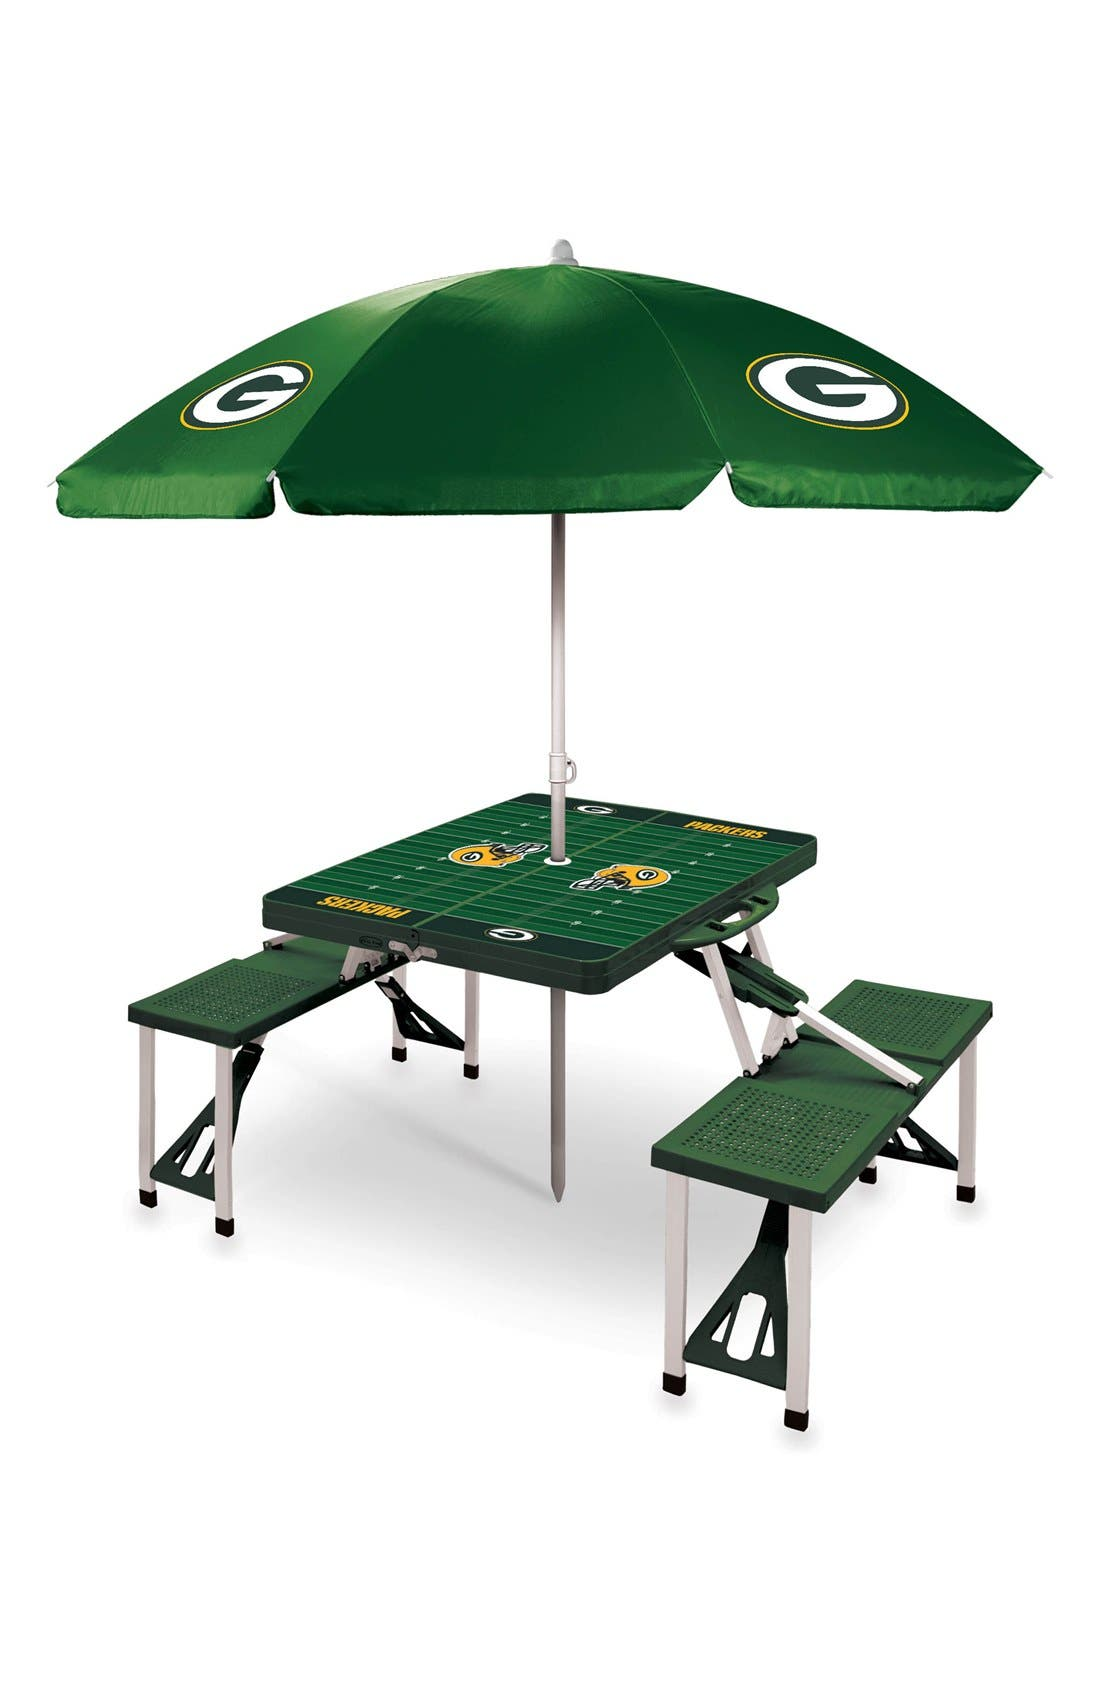 Team Football Field Design Portable Picnic Table with Umbrella,                         Main,                         color, 300